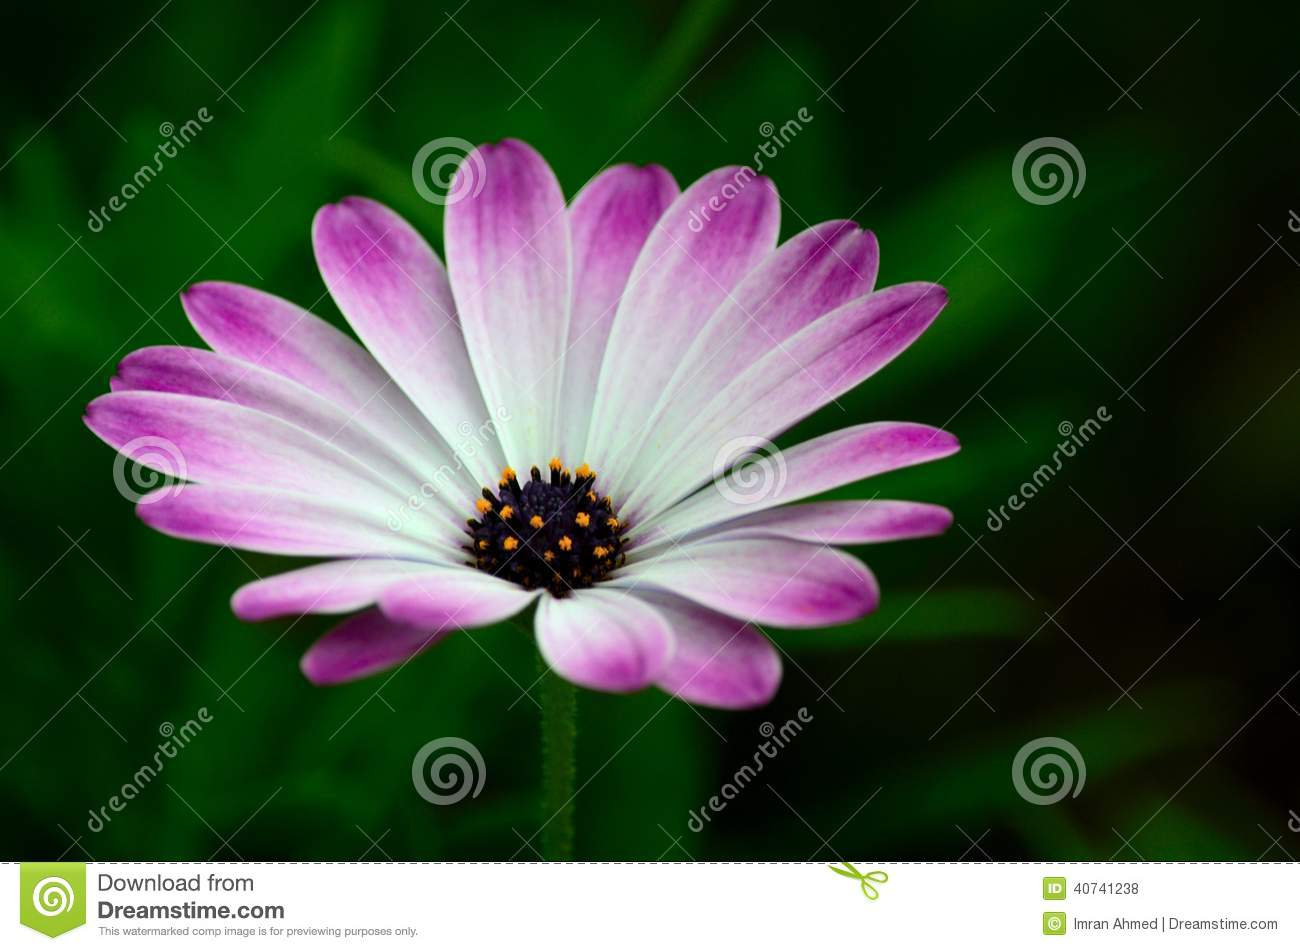 Violet And White Flower Petals With Yellow Stamens Blossoms Stock